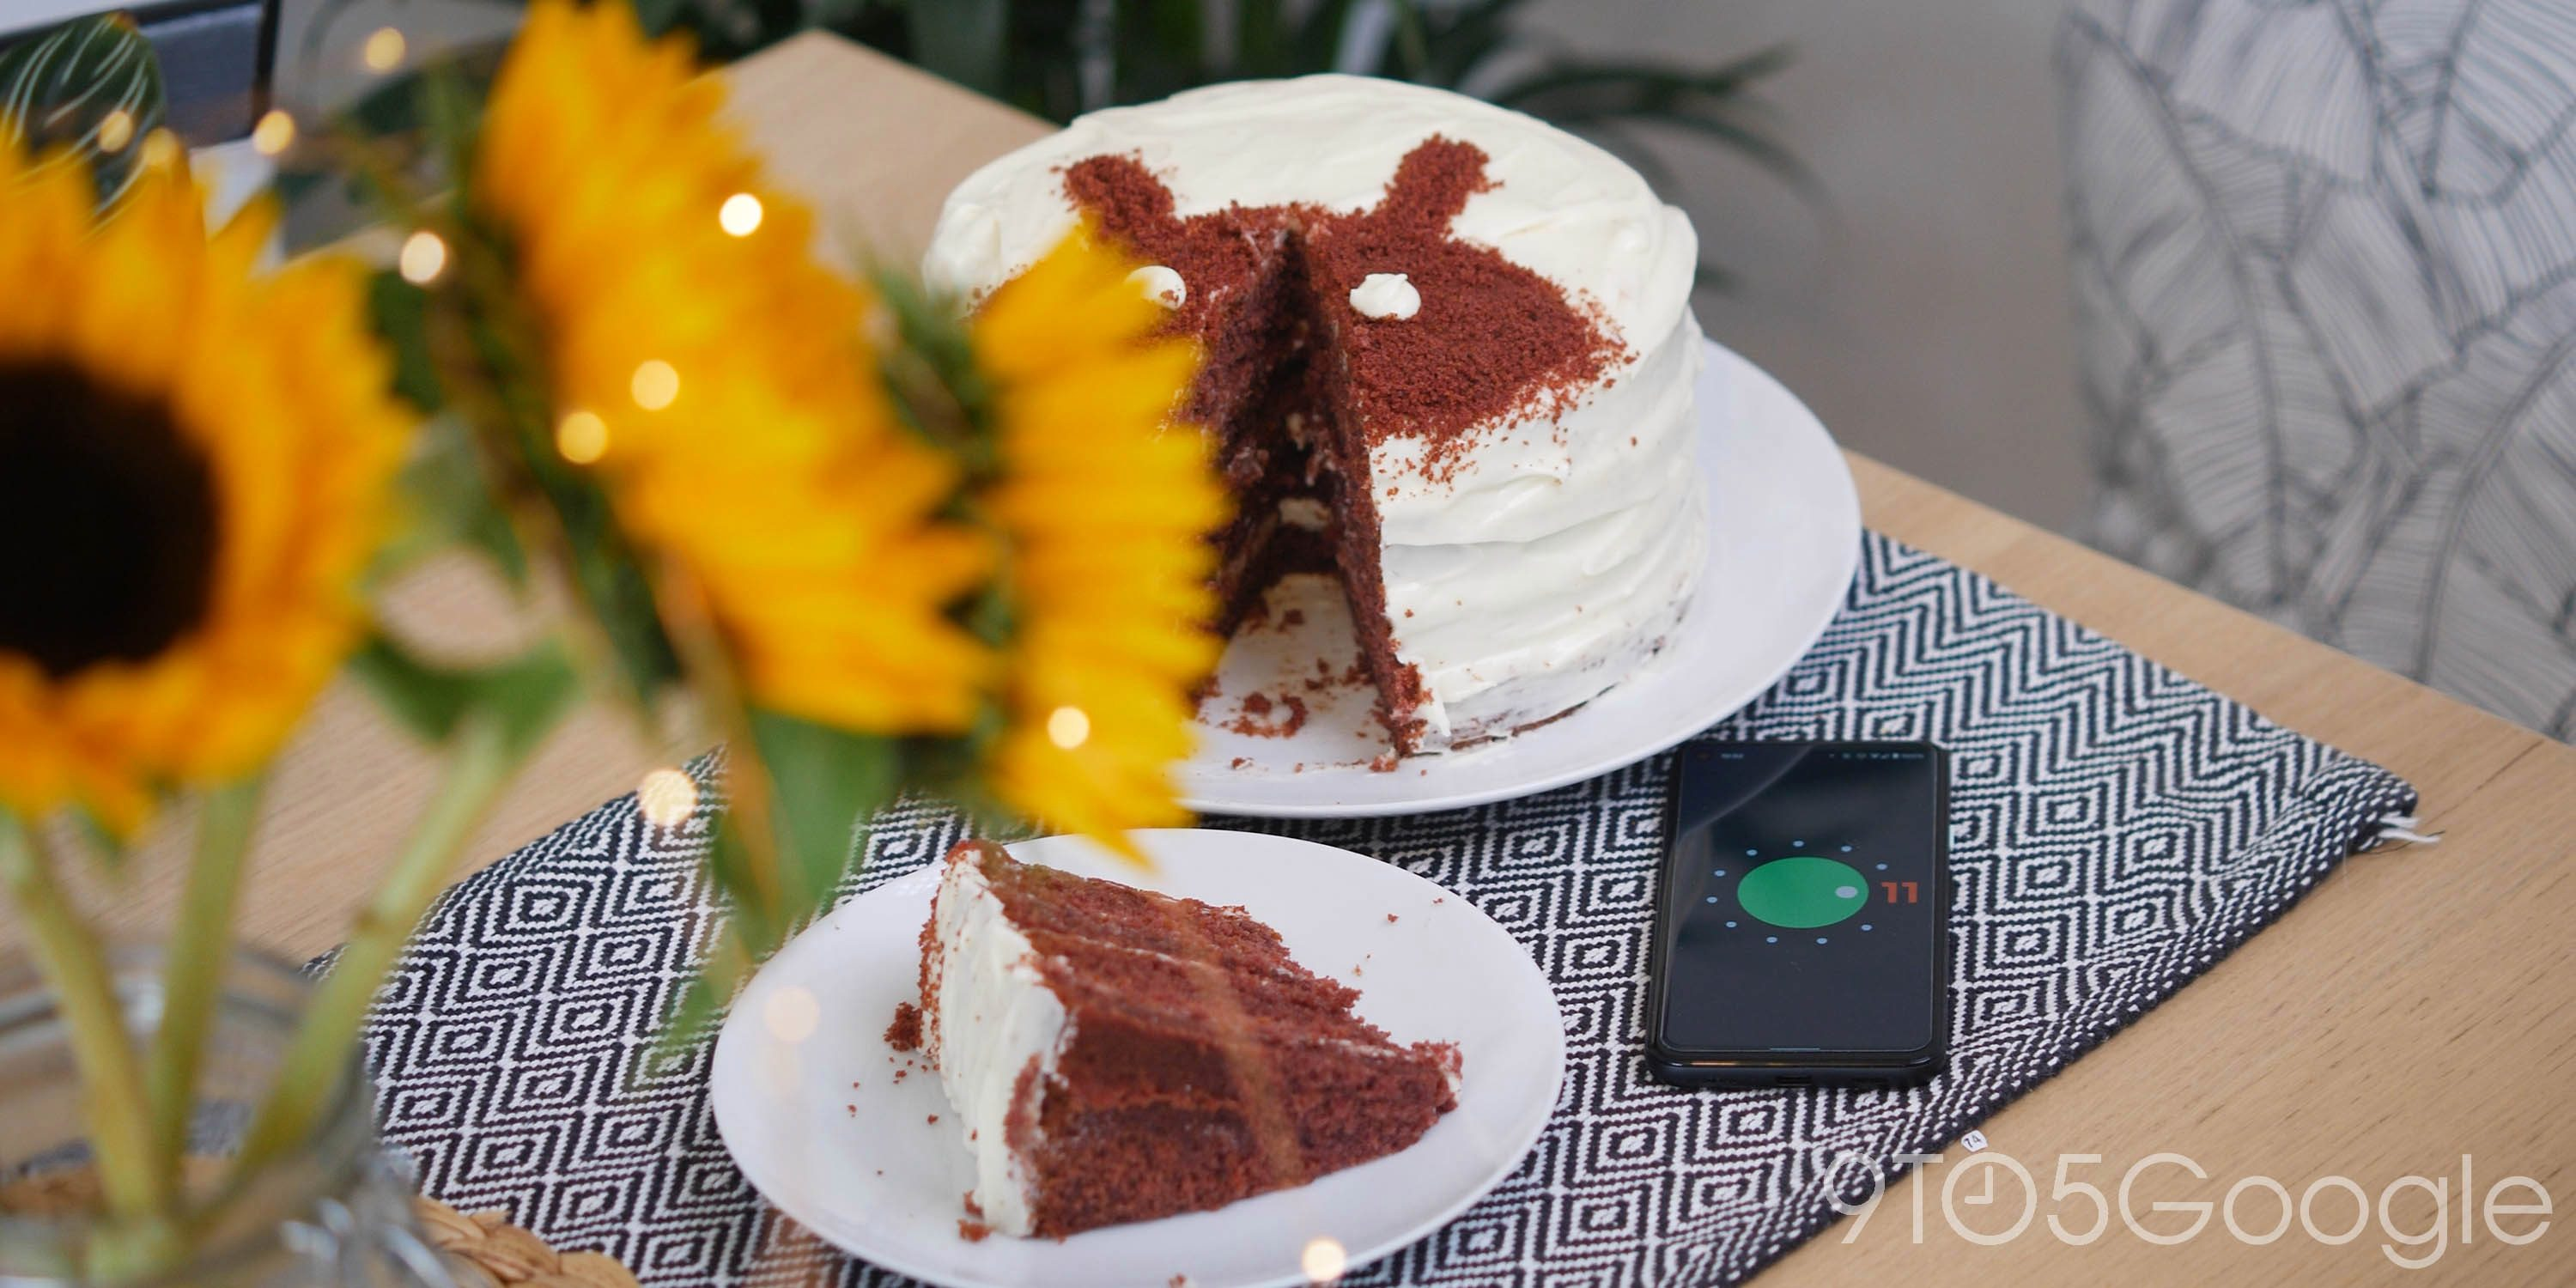 We made Google's official Android 11 Red Velvet Cake recipe